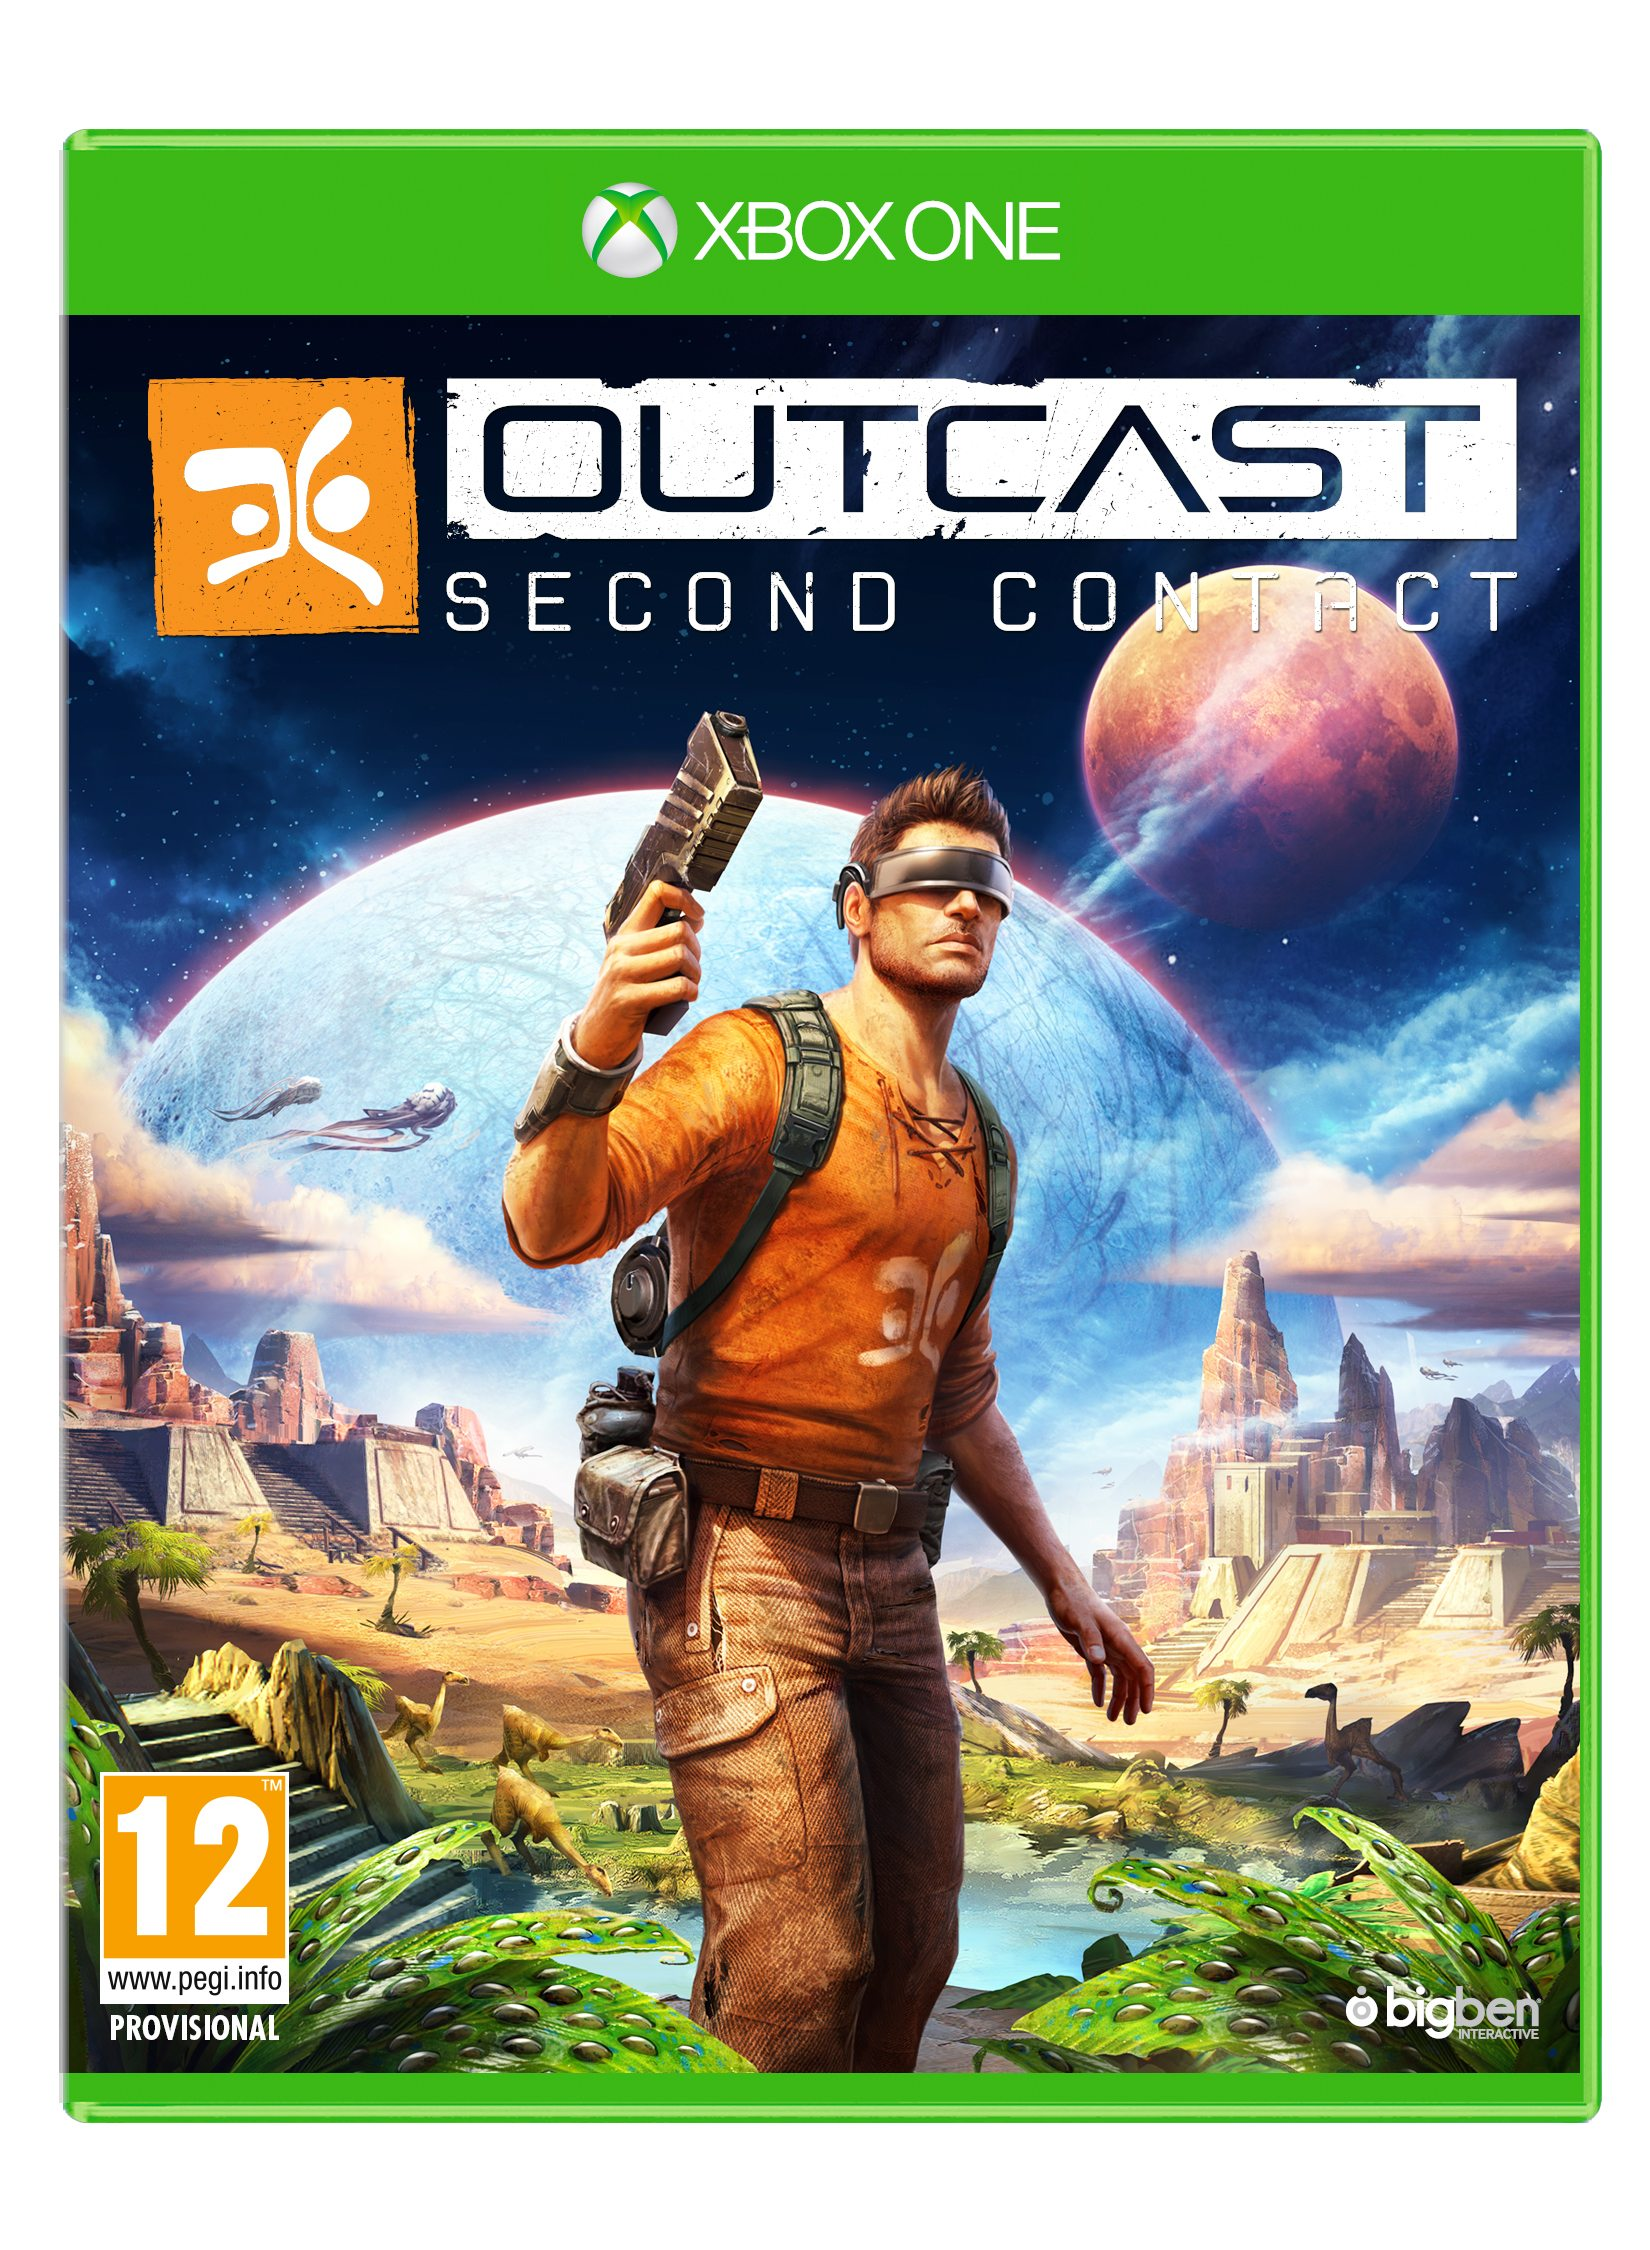 Outcast - Second Contact Reveals First Images